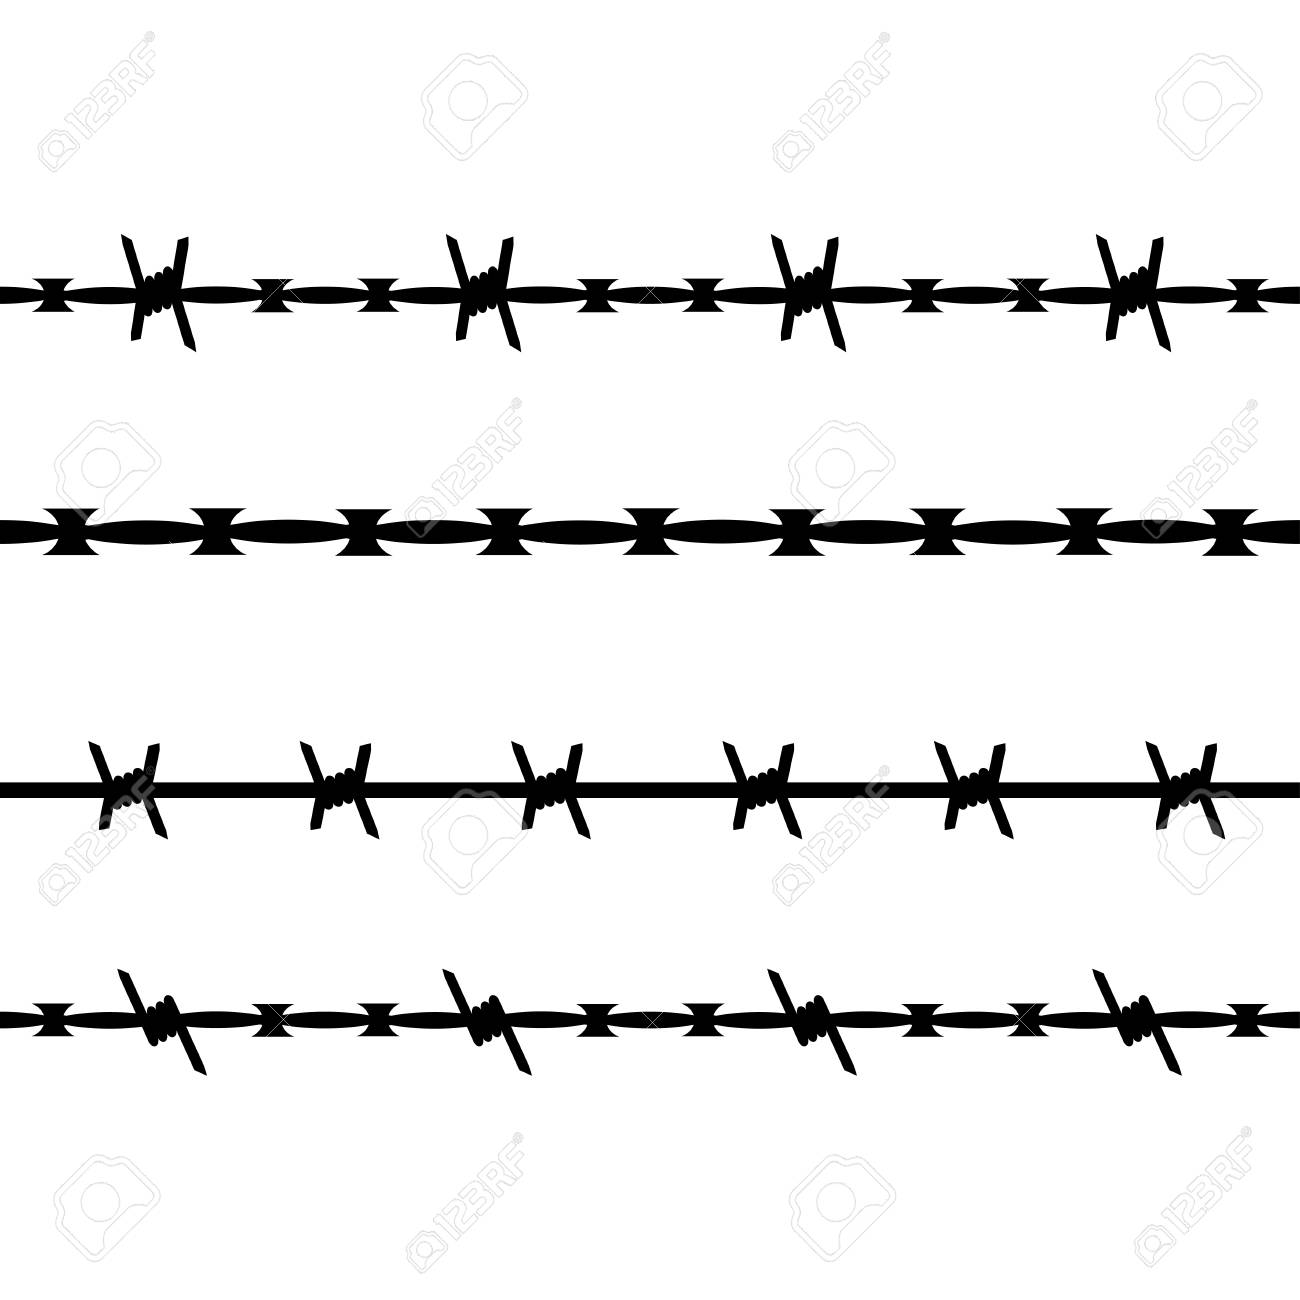 Vector Seamless Silhouette Of Barbed Wire. Types Of Barbed Wire ...